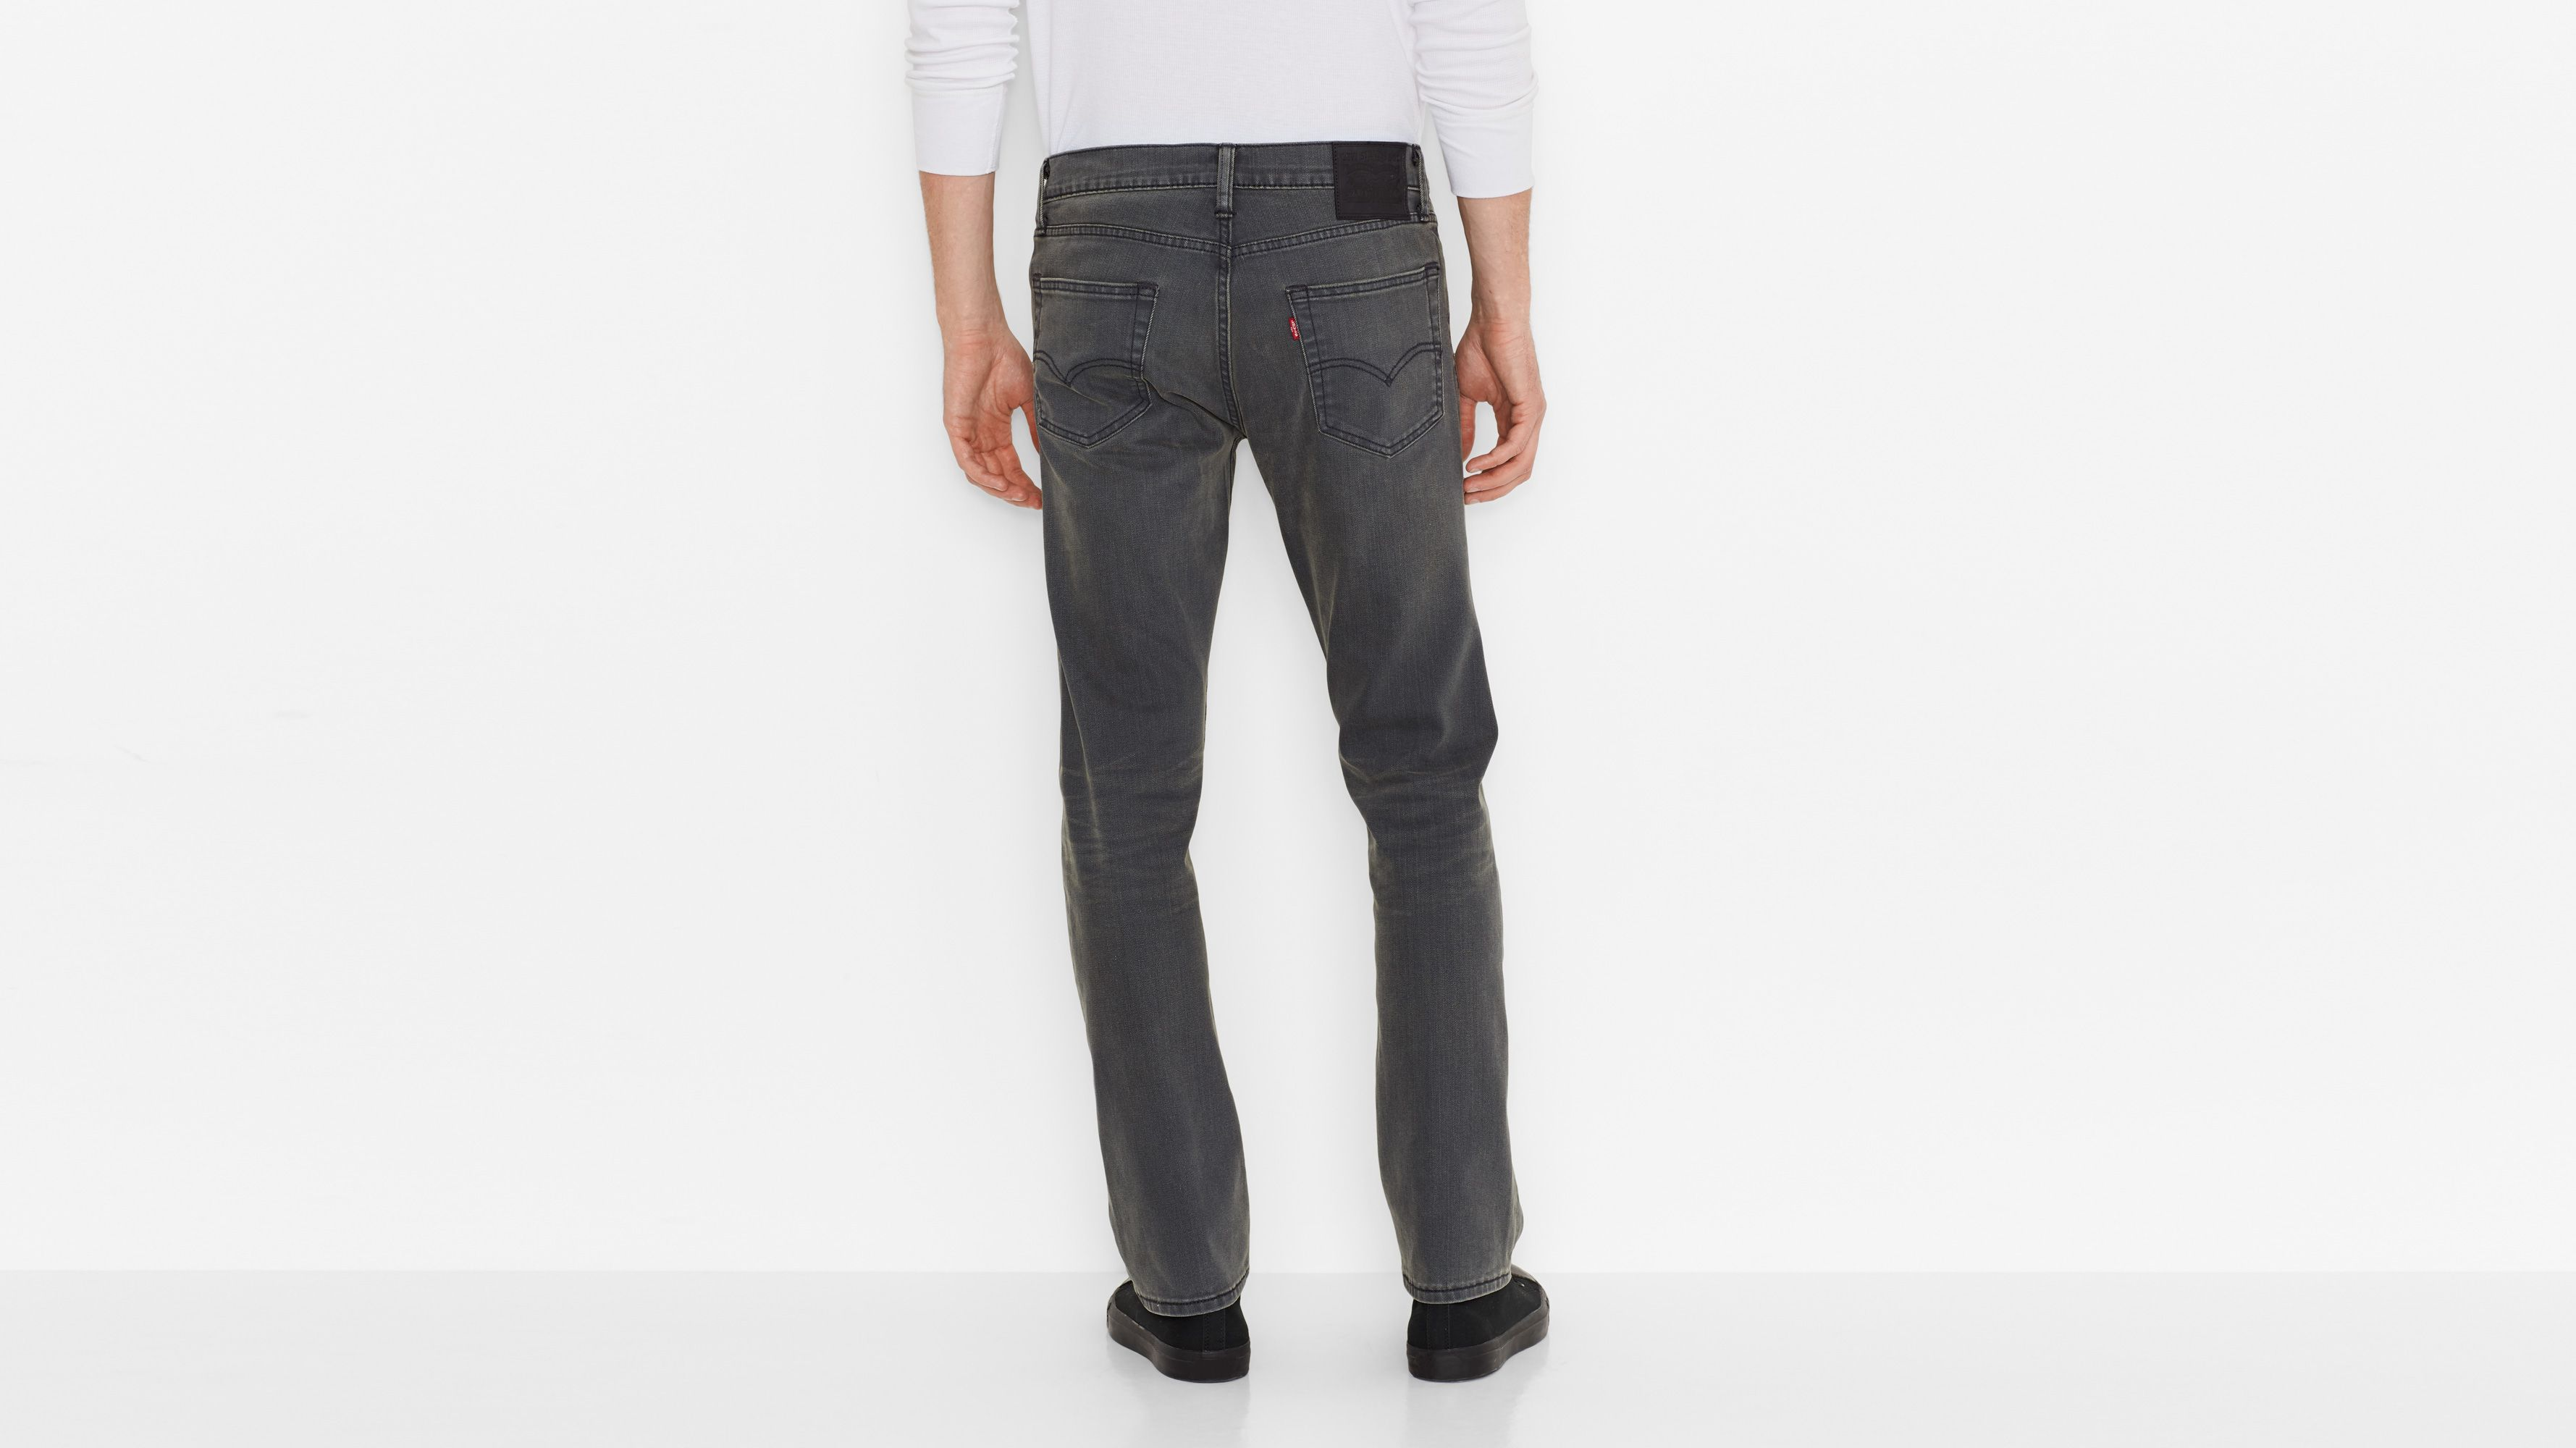 0754a4fca19 504™ Regular Straight Men's Jeans - Grey | Levi's® US